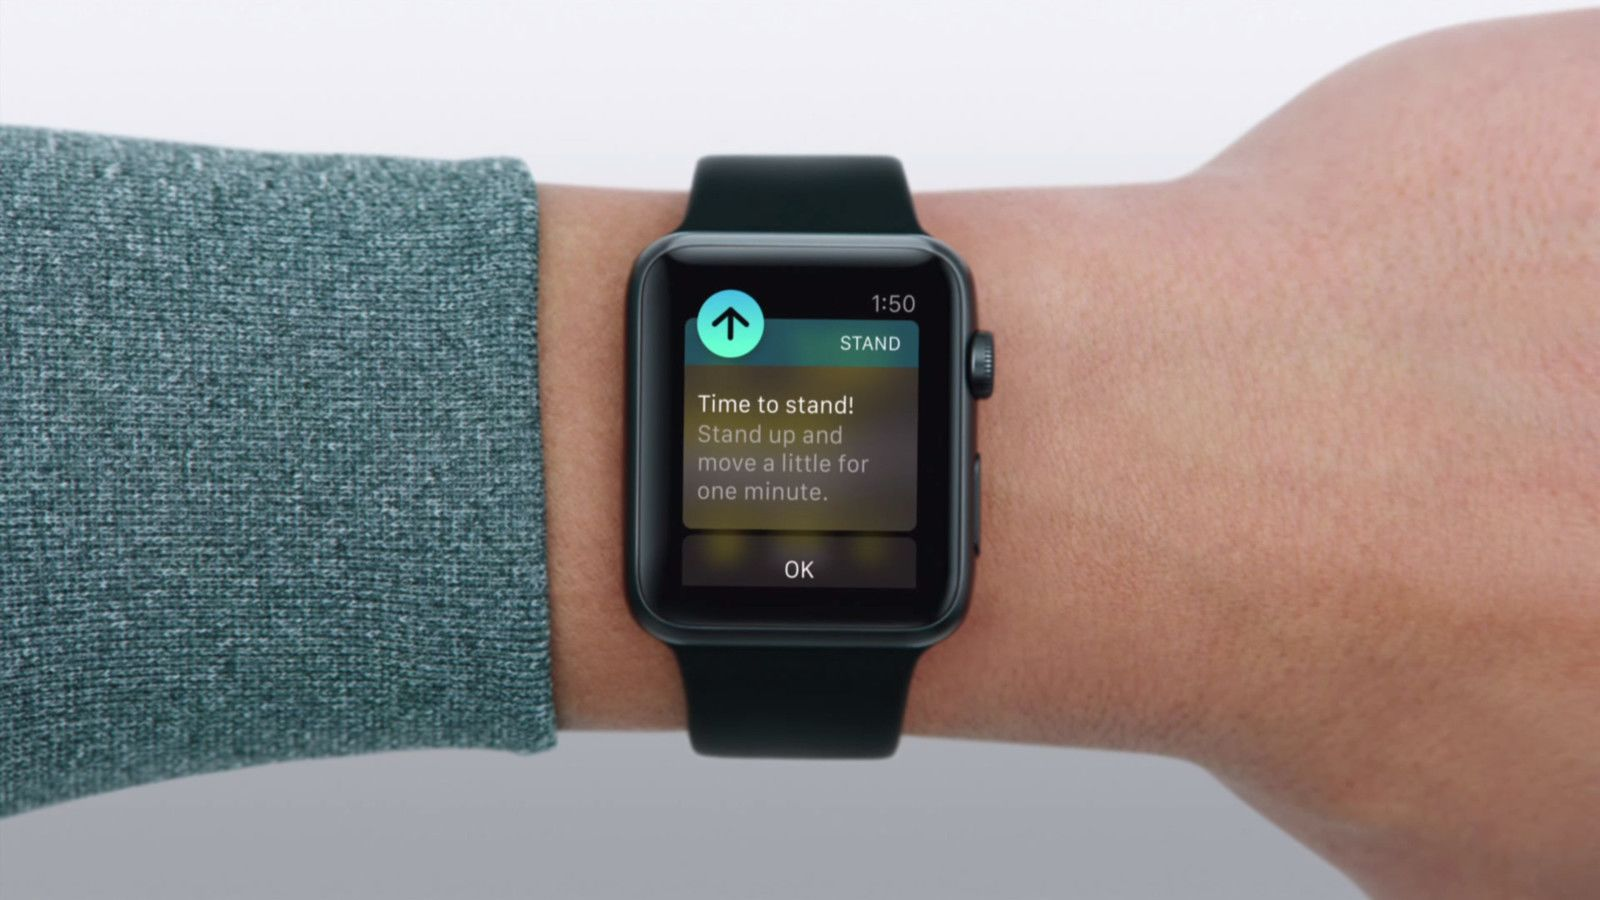 One of the WatchOS notifications. This one is from the Activity app telling you that you're sitting for too long, it's time to get up.